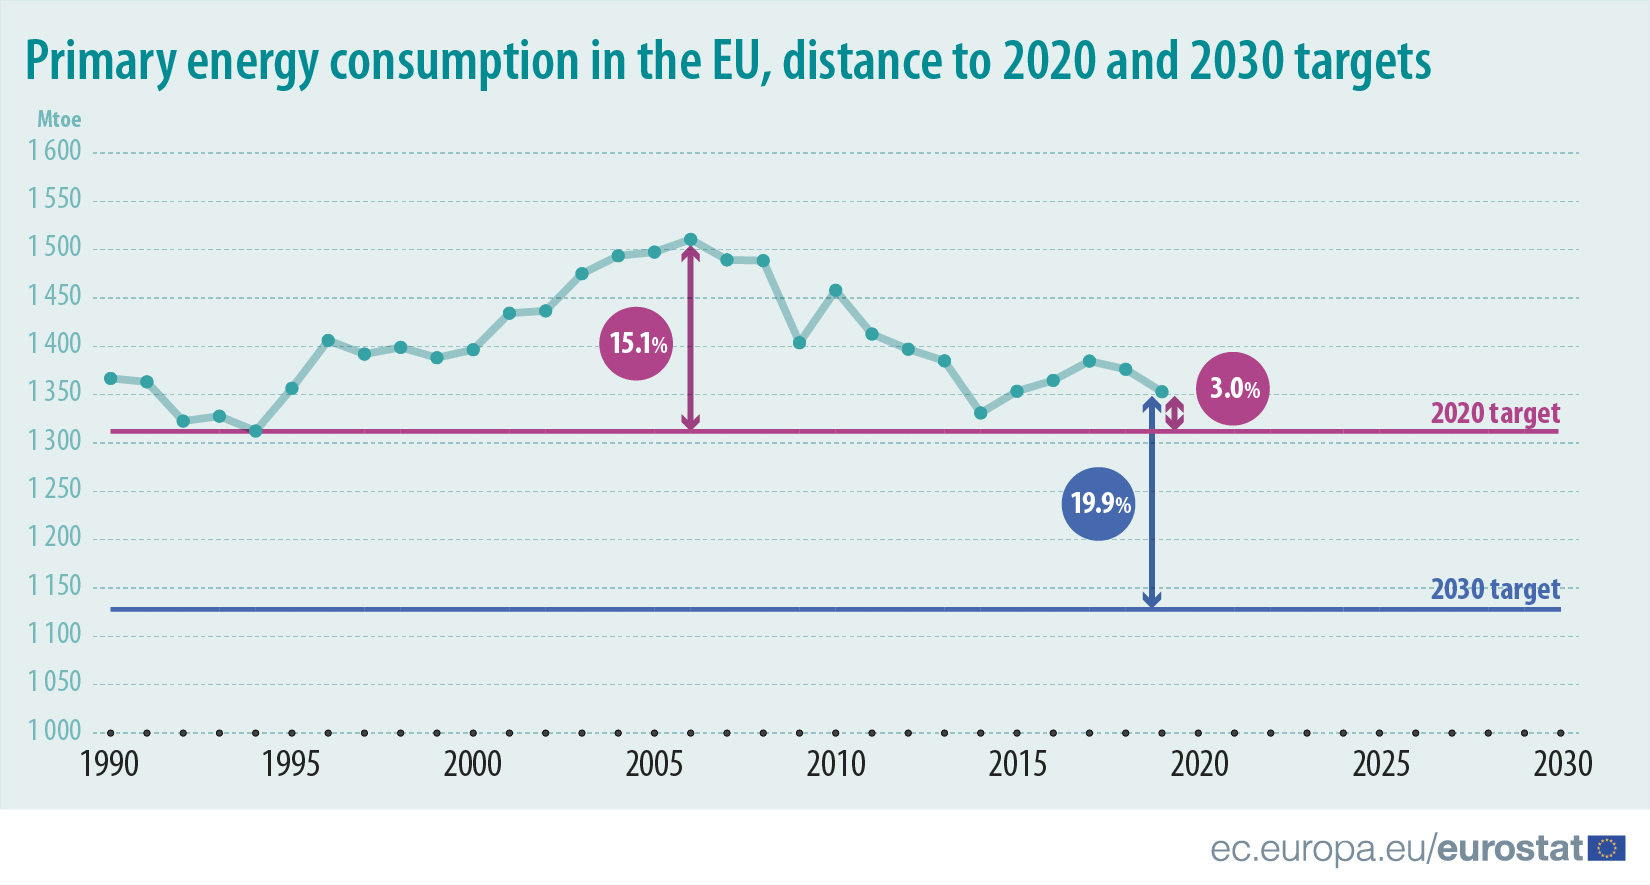 Primary energy consumption in the EU, distance to 2020 and 2030 targets